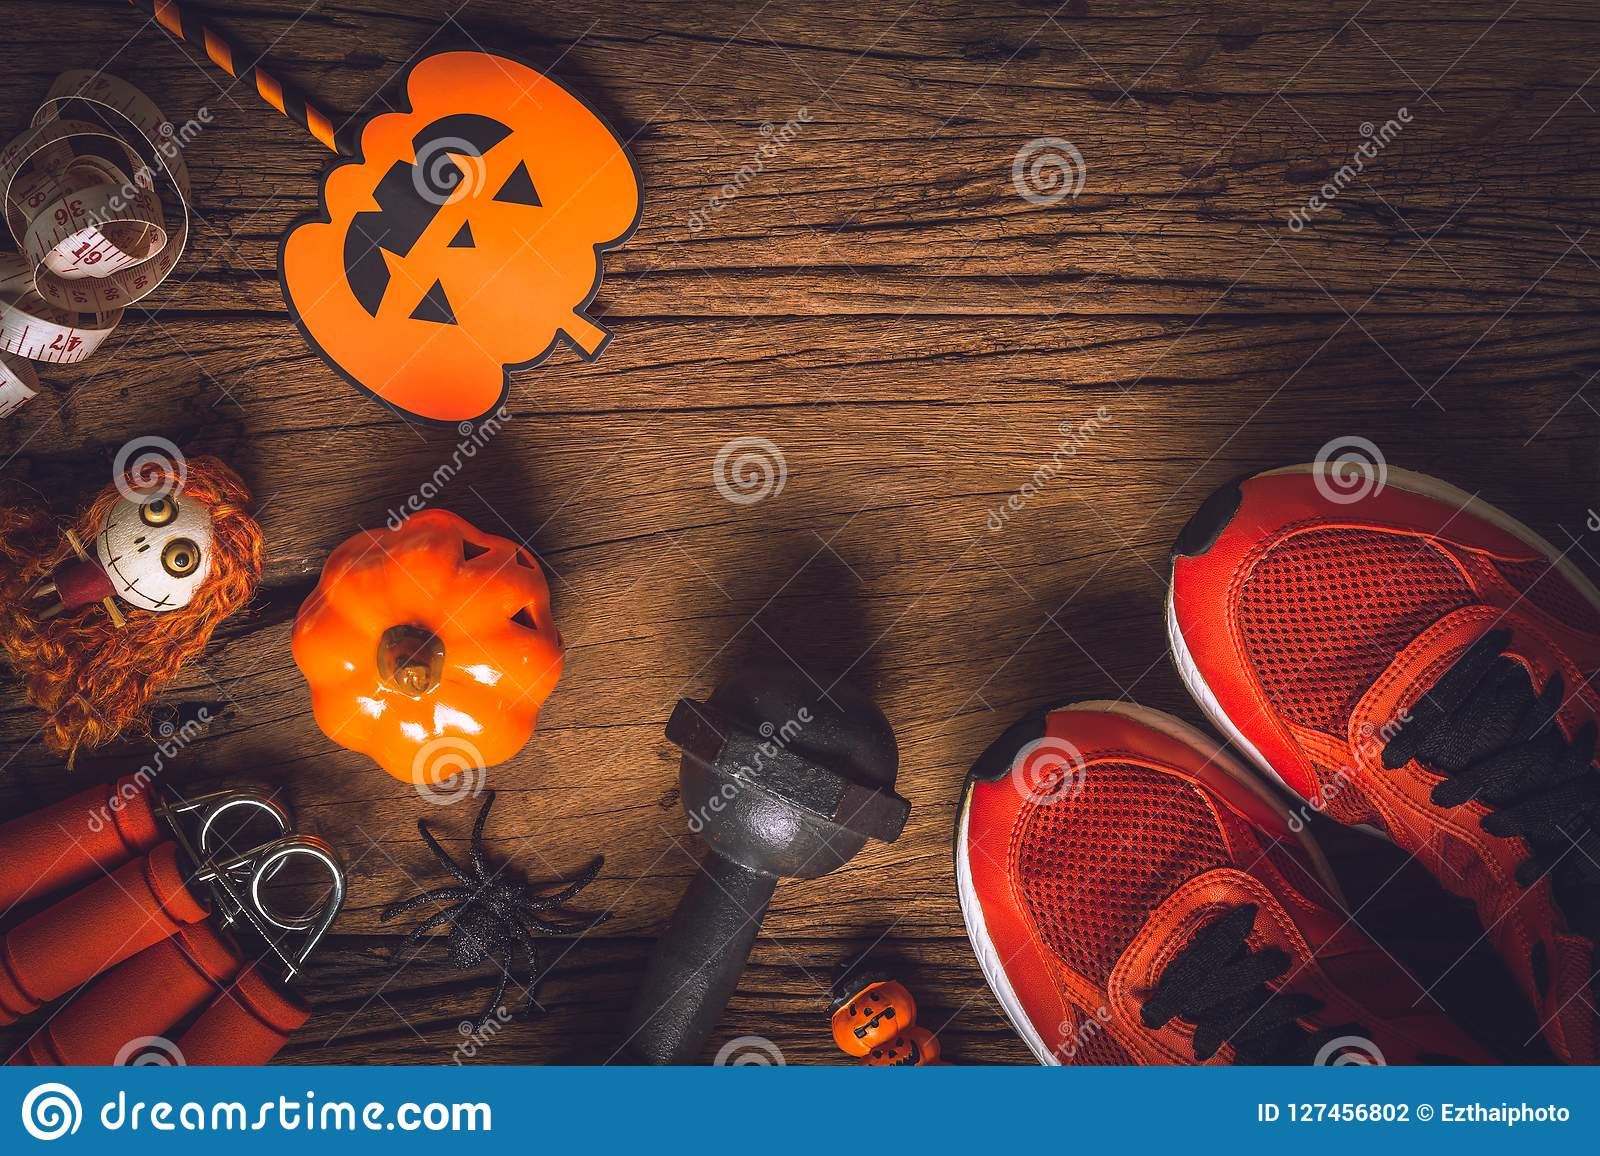 Happy Halloween day with Fitness, Exercise, Working out healthy